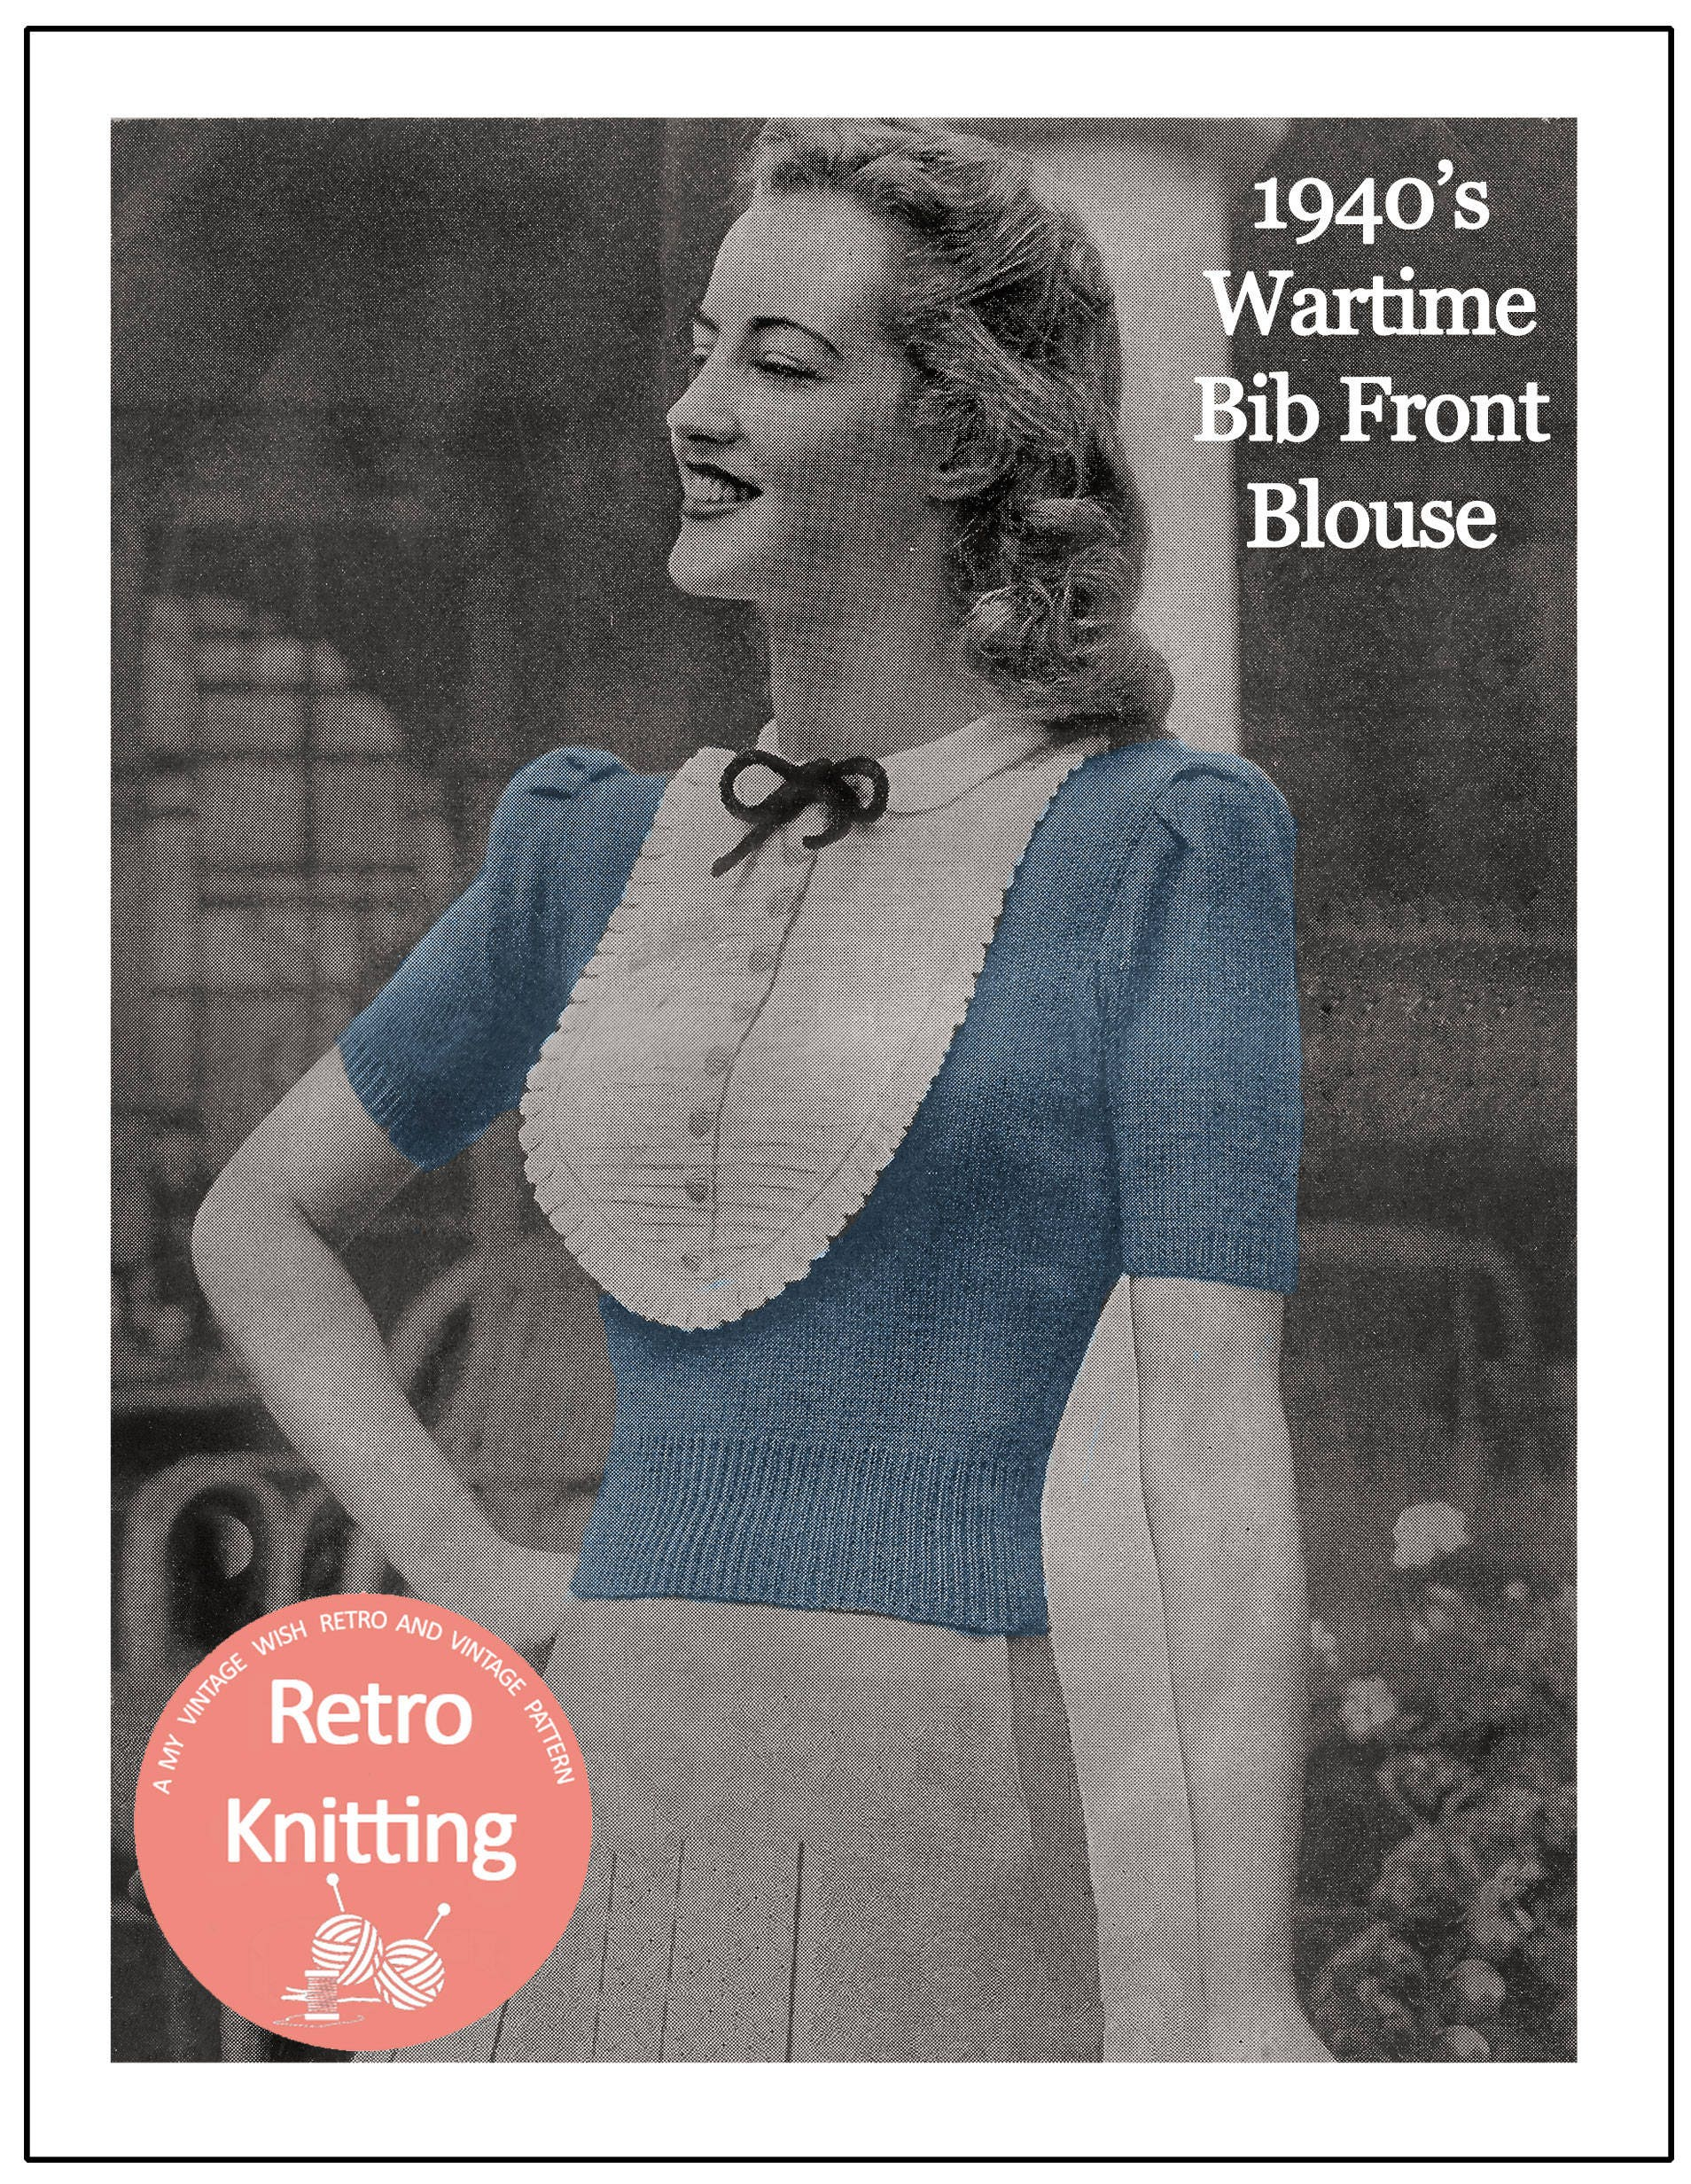 1940s Wartime Bib Front Blouse Knitting Pattern Instant